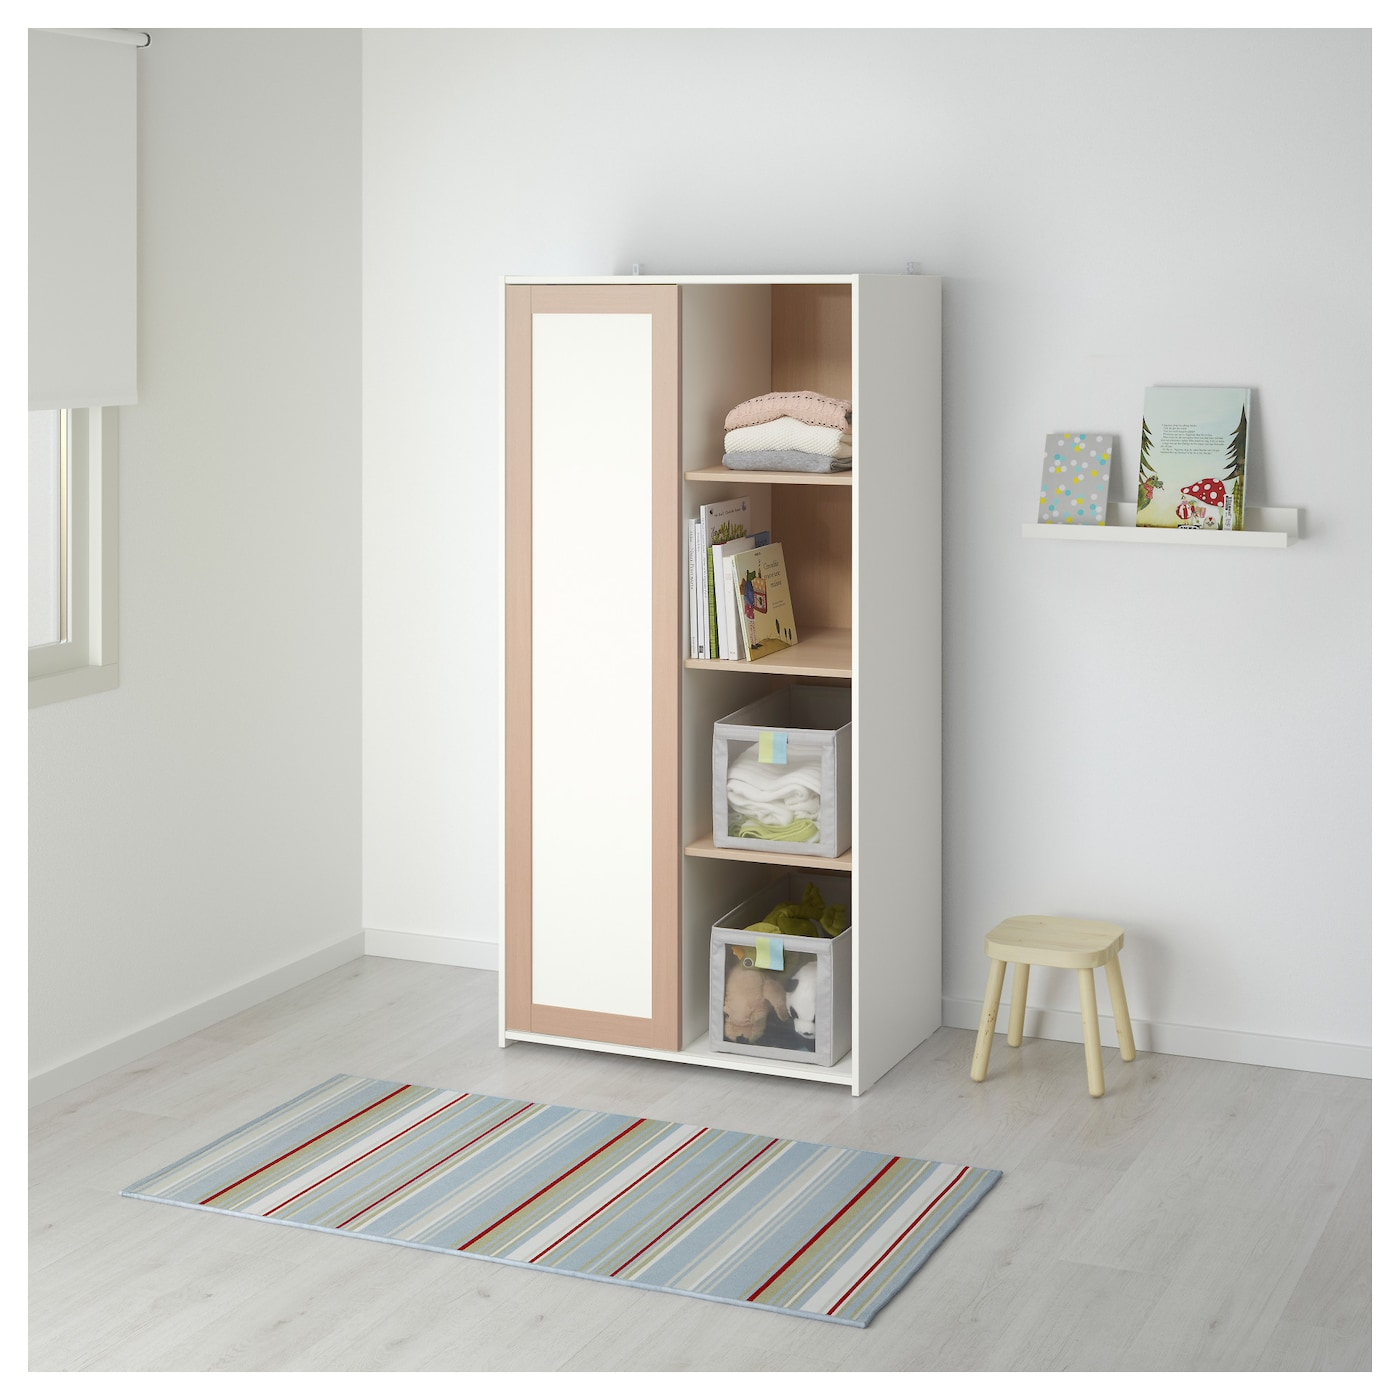 Ikea Orlando Young Child And Smaller Space Showroom: SNIGLAR Wardrobe Beech/white 81 X 50 X 163 Cm